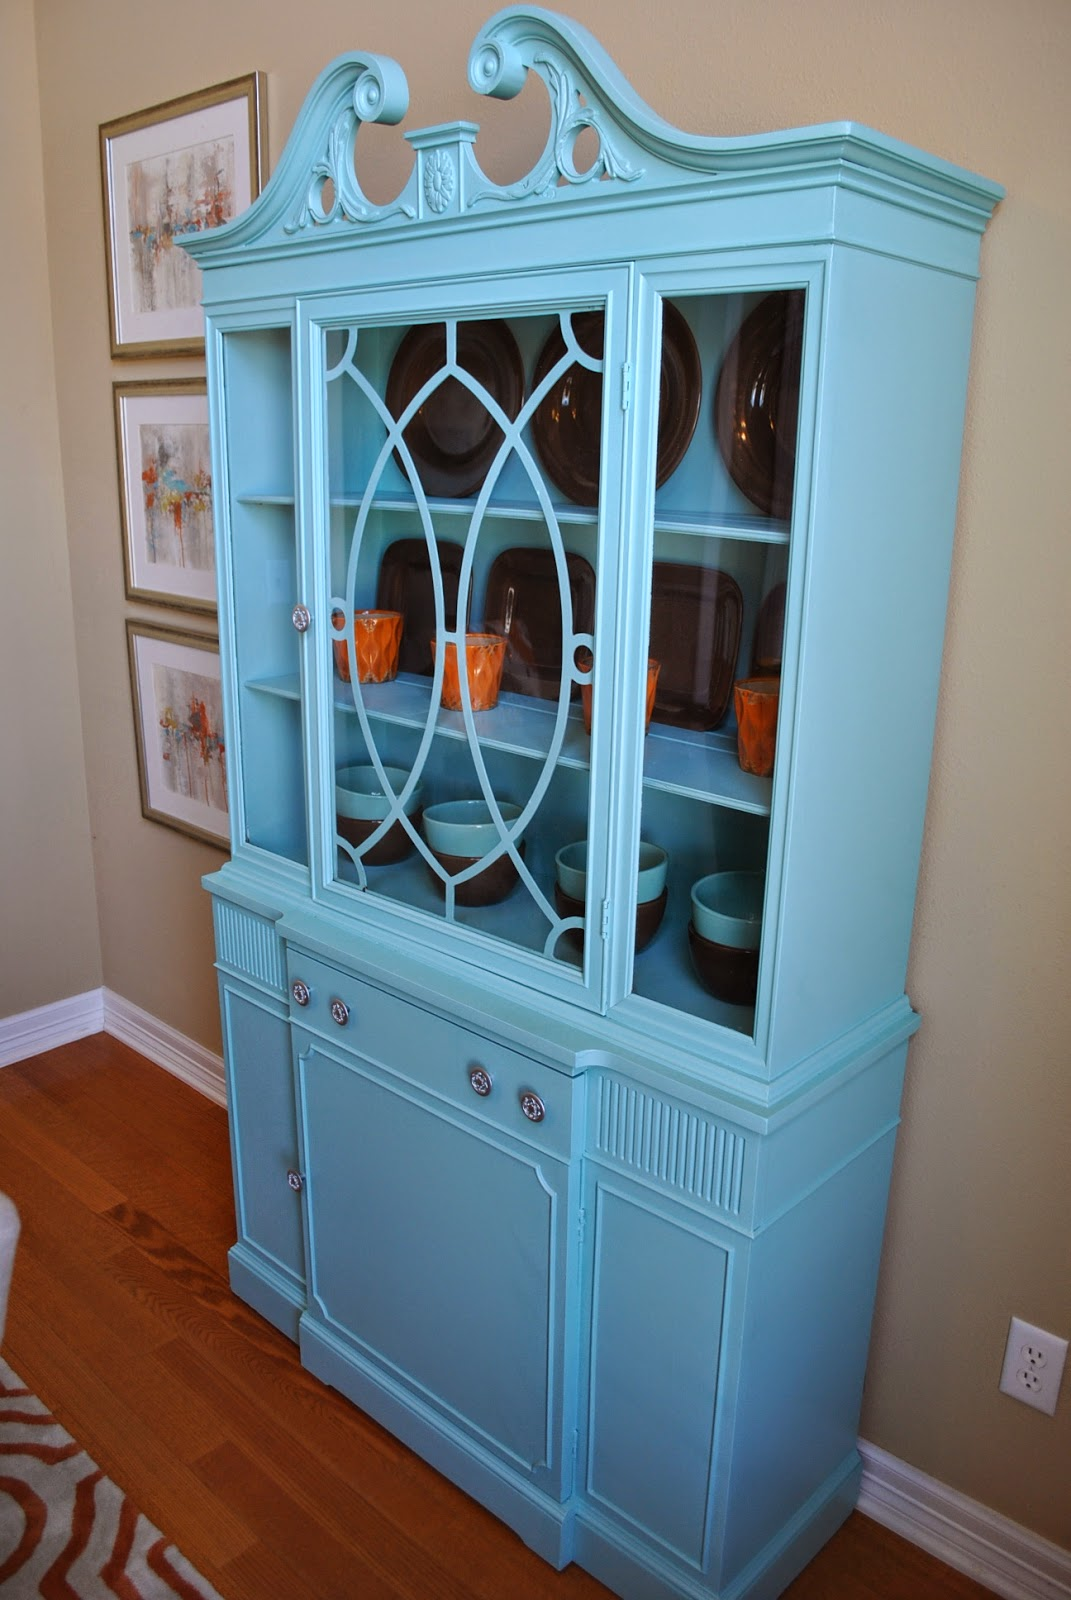 Emily Kept The Original Hardware On China Cabinet And Painted It Silver So Fun Right Now I Have Some Of My Everyday Target Dishes In There